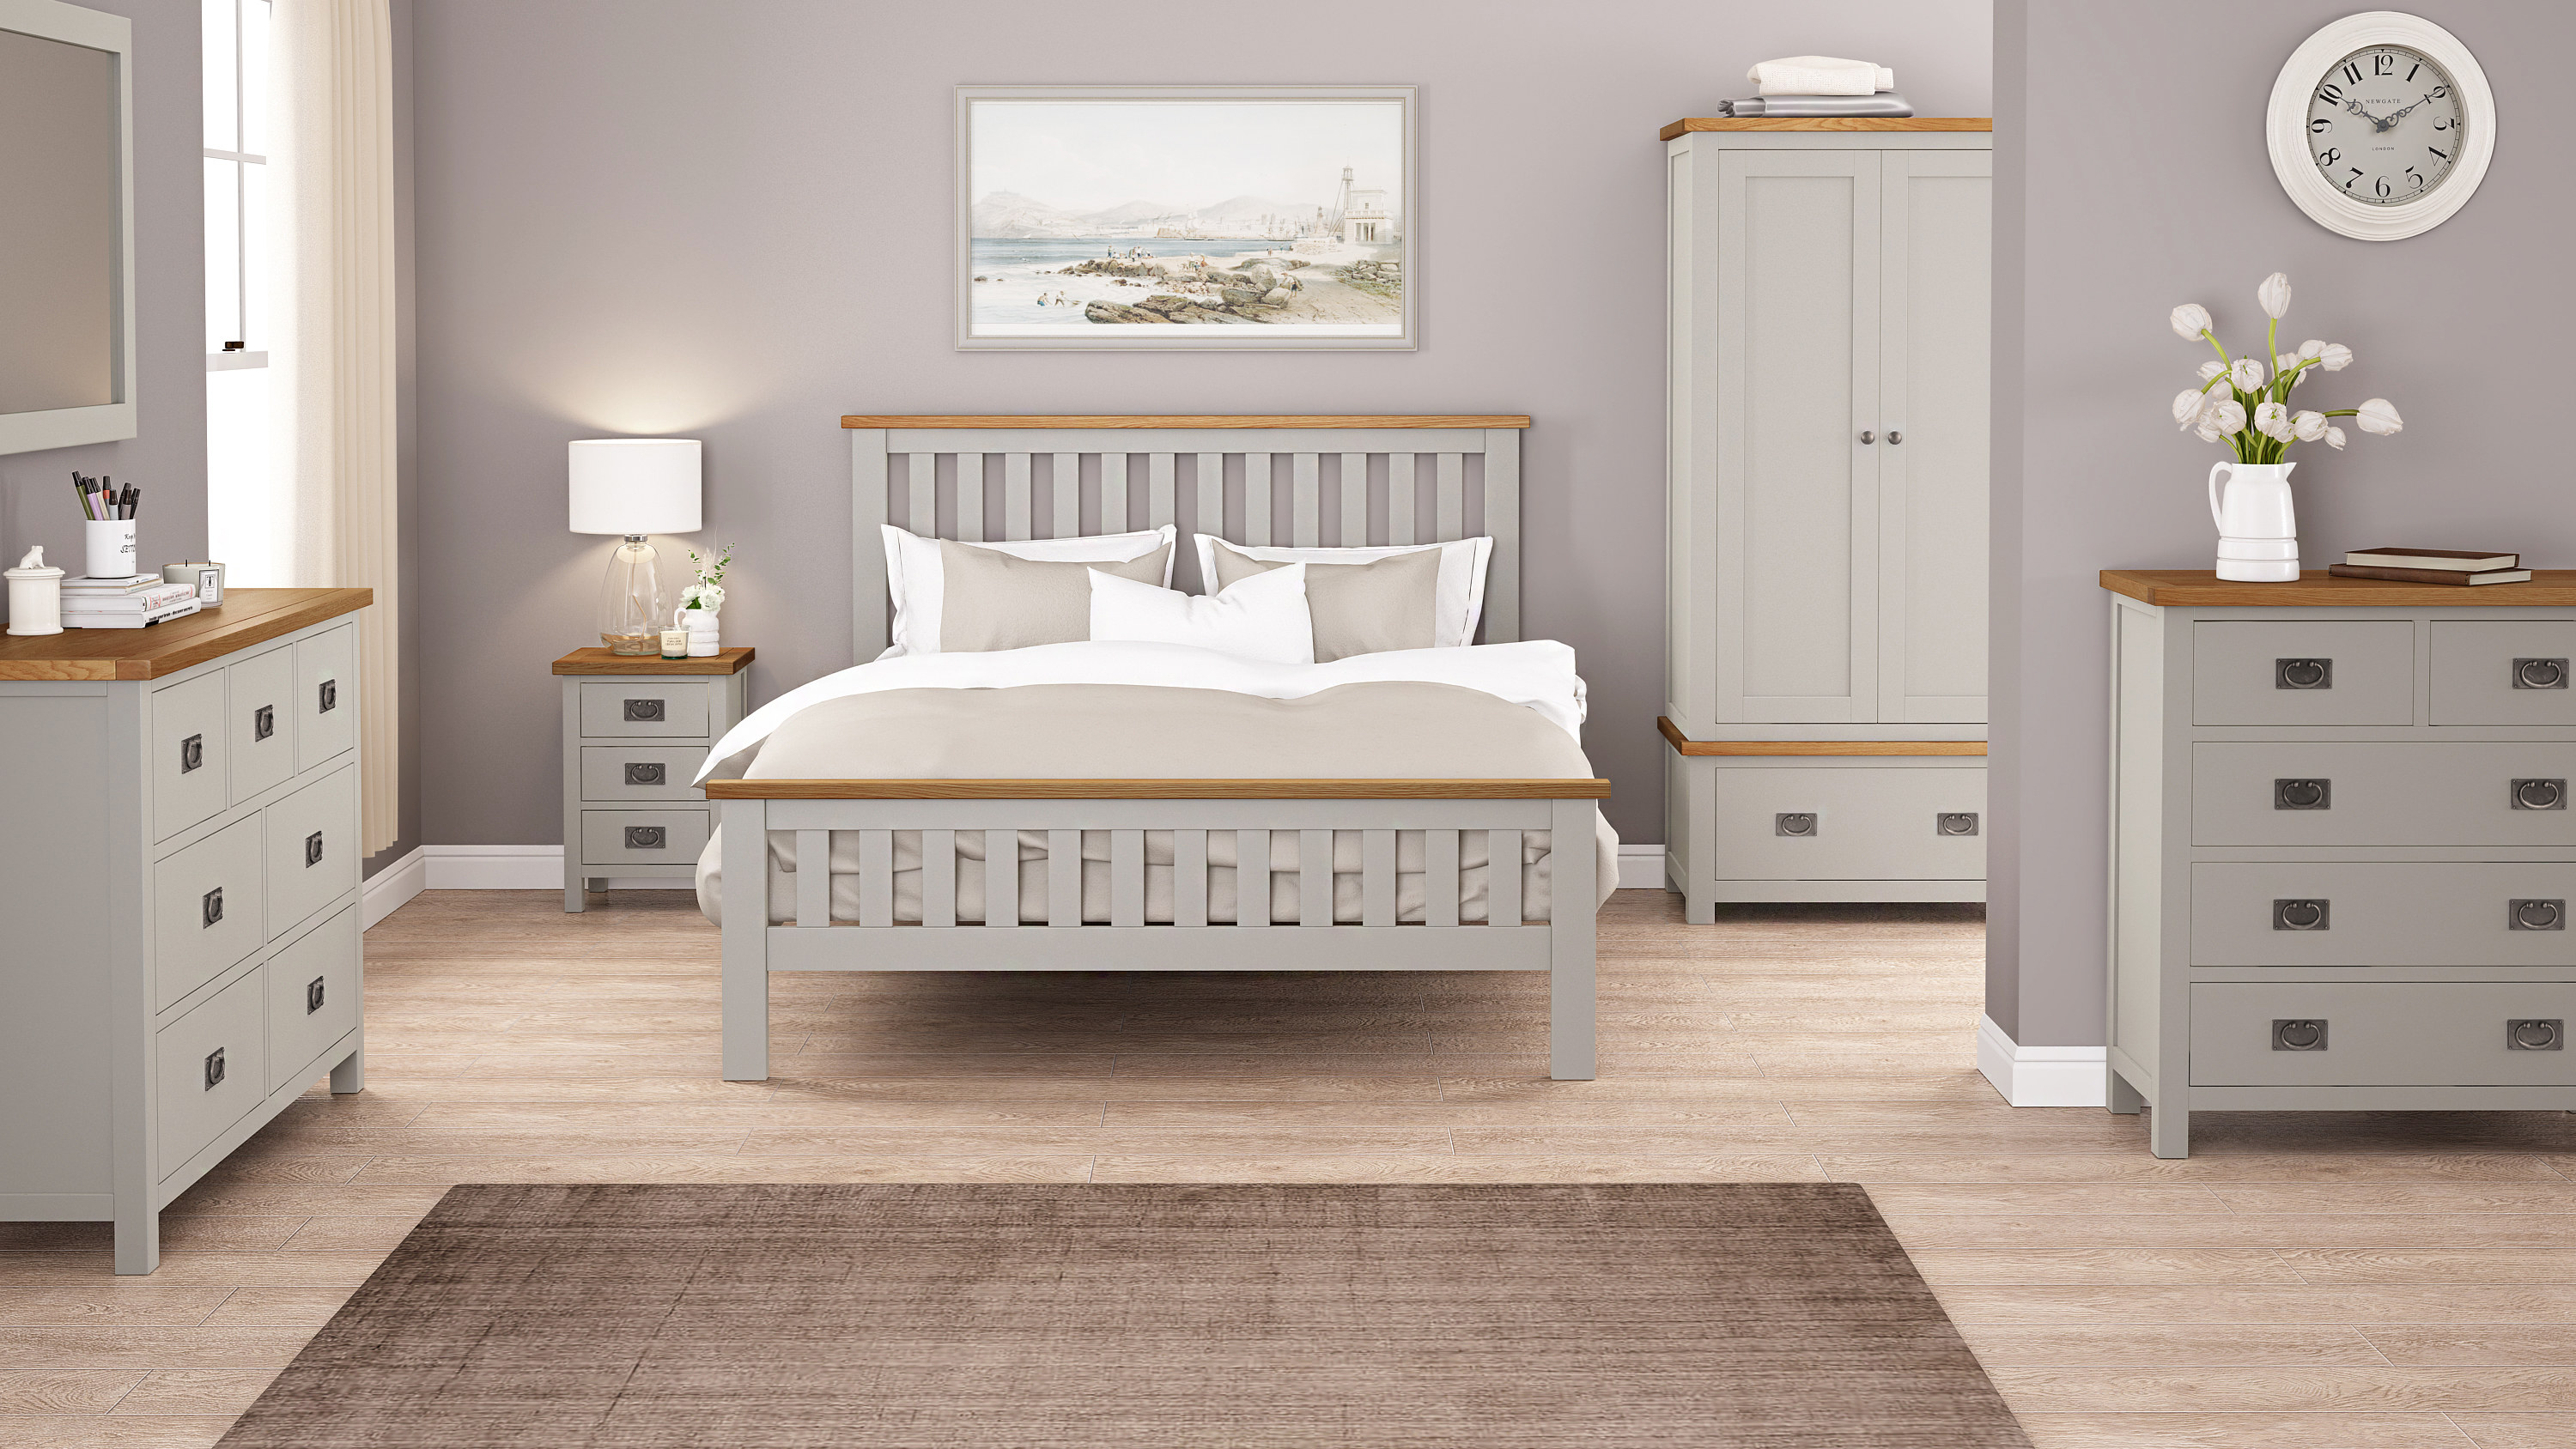 Rustique Home Sicily Bedroom Furniture with oak bed, chest of drawers, storage box, wardrobe and bedside table